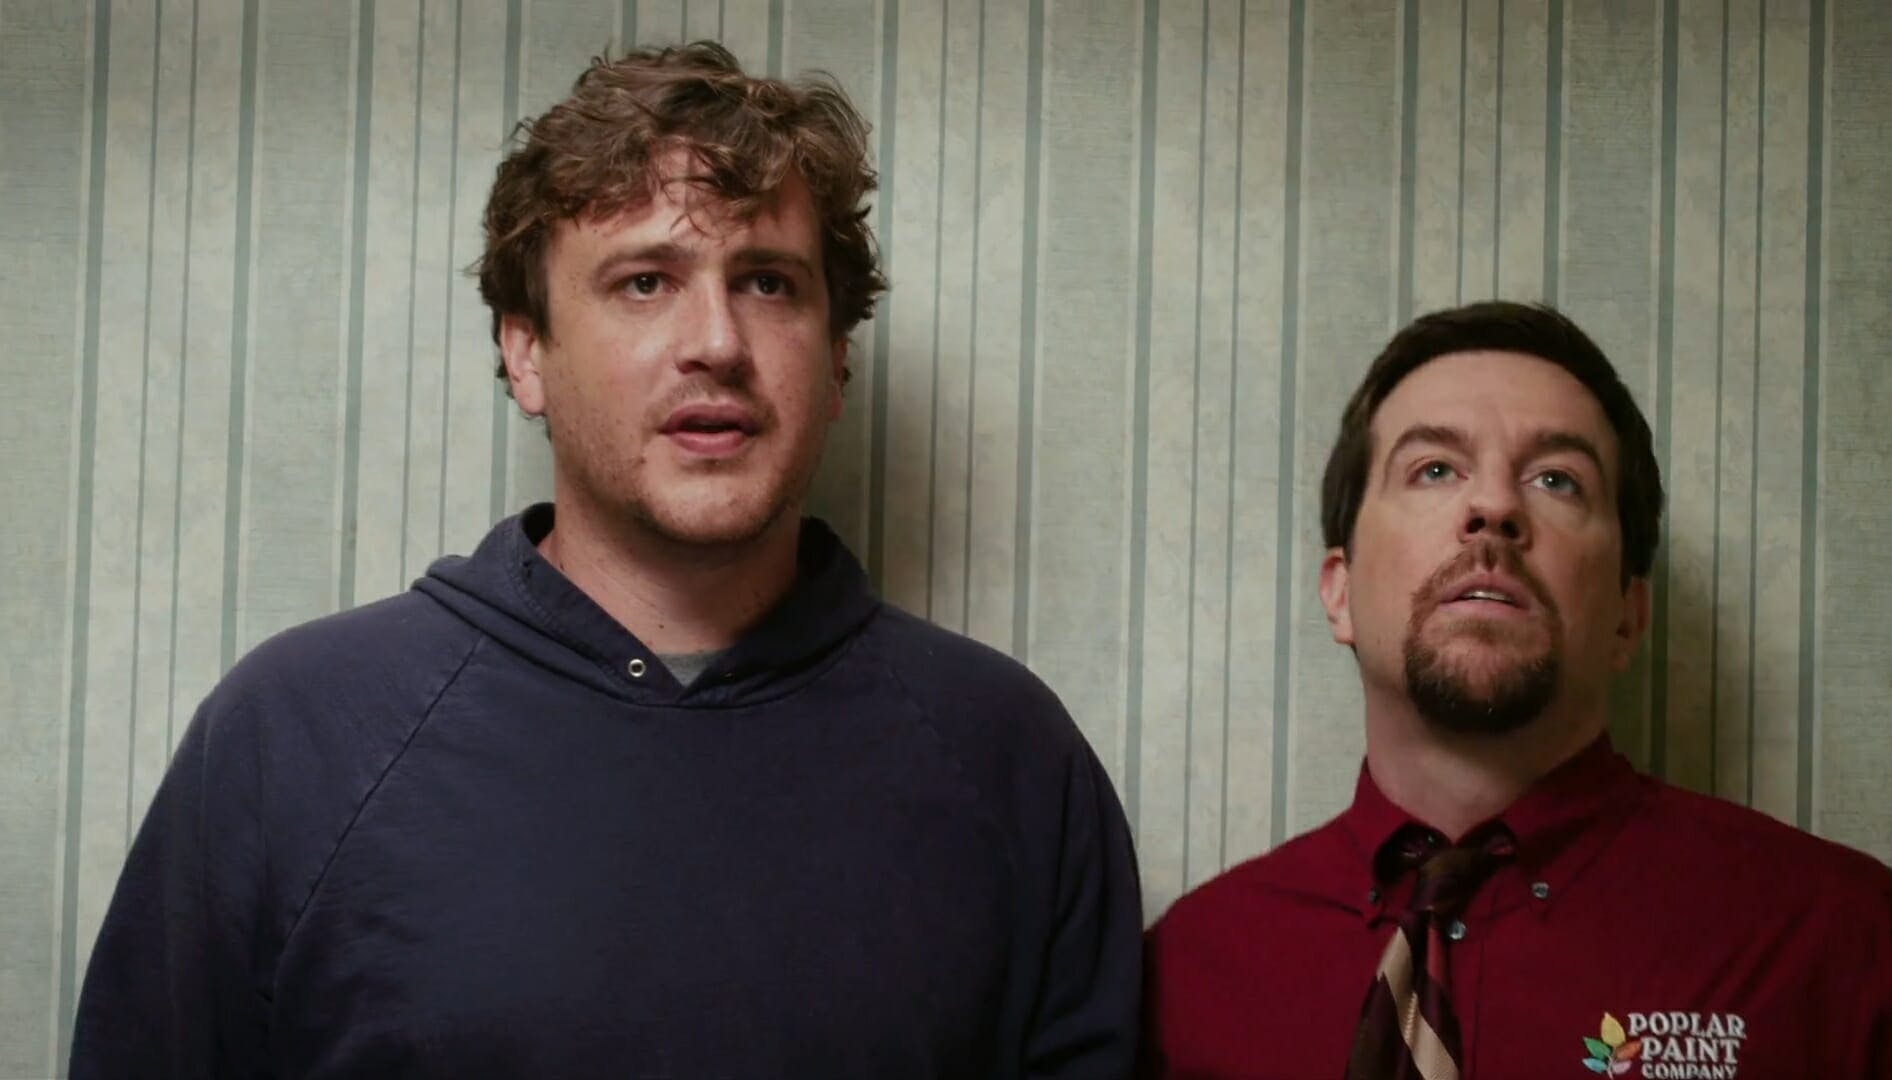 funny movies on amazon prime - jeff who lives at home